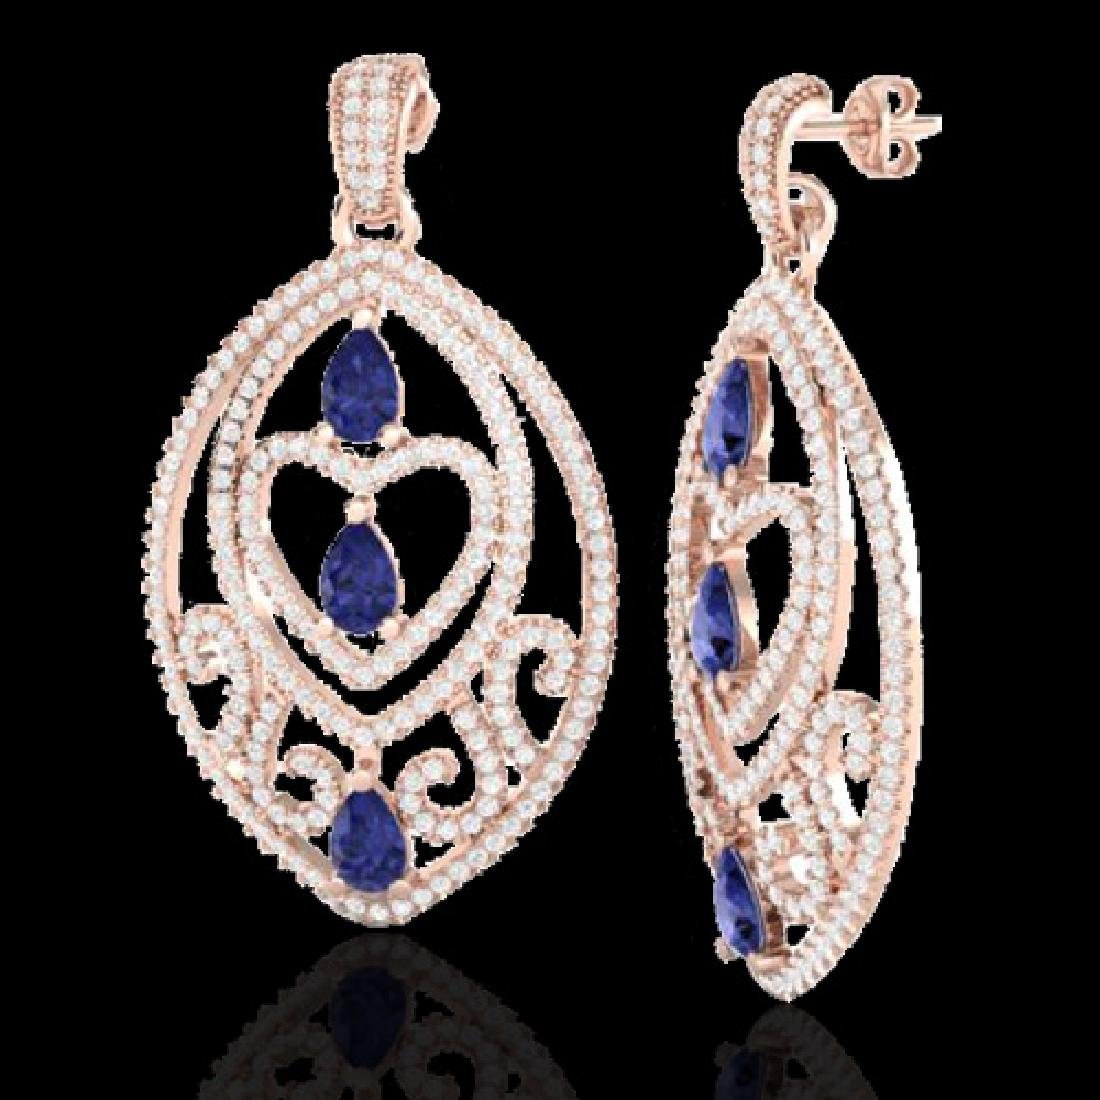 7 CTW Tanzanite & Micro Pave VS/SI Diamond Heart - 2